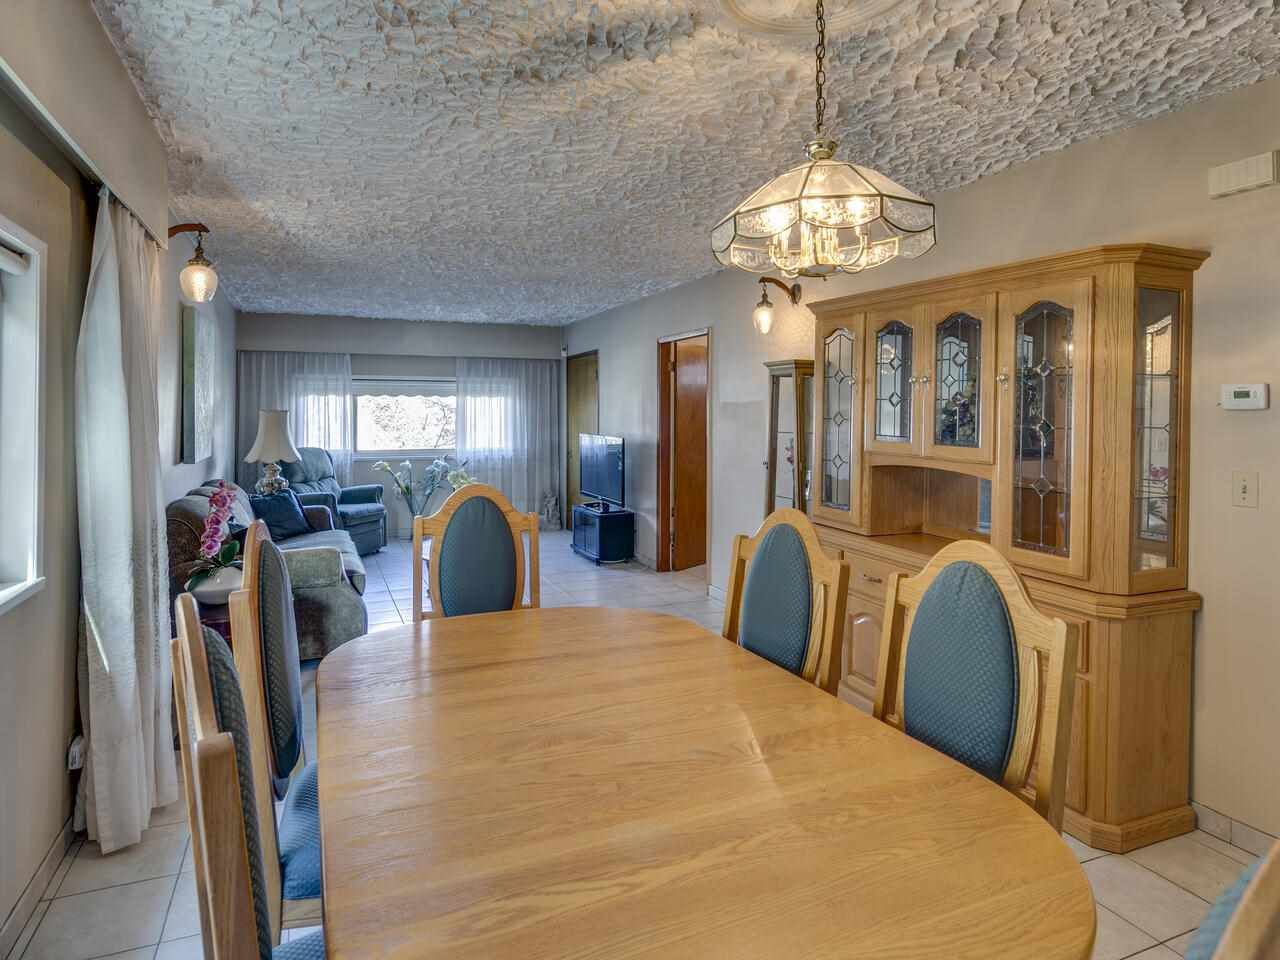 """Photo 10: Photos: 1550 GRANT Street in Vancouver: Grandview Woodland House for sale in """"GRANVIEW"""" (Vancouver East)  : MLS®# R2539844"""